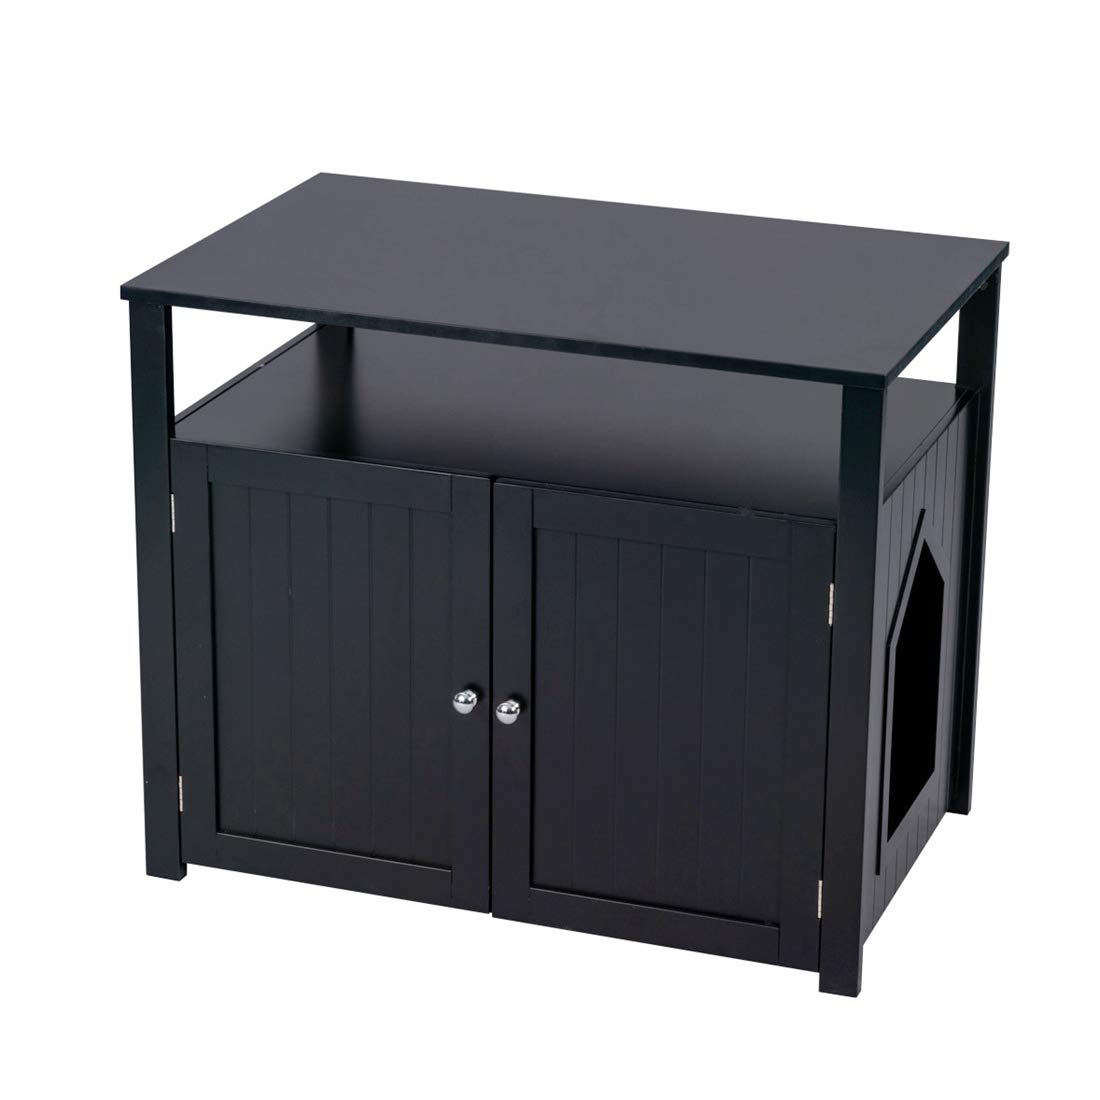 Good Life Double-Door Pet Crate Cat Washroom Hidden Cat Litter Box Enclosure Furniture Cat House Right/Left Side Entrance Selectable with Table Home Nightstand Large Box Black Color by GOOD LIFE USA